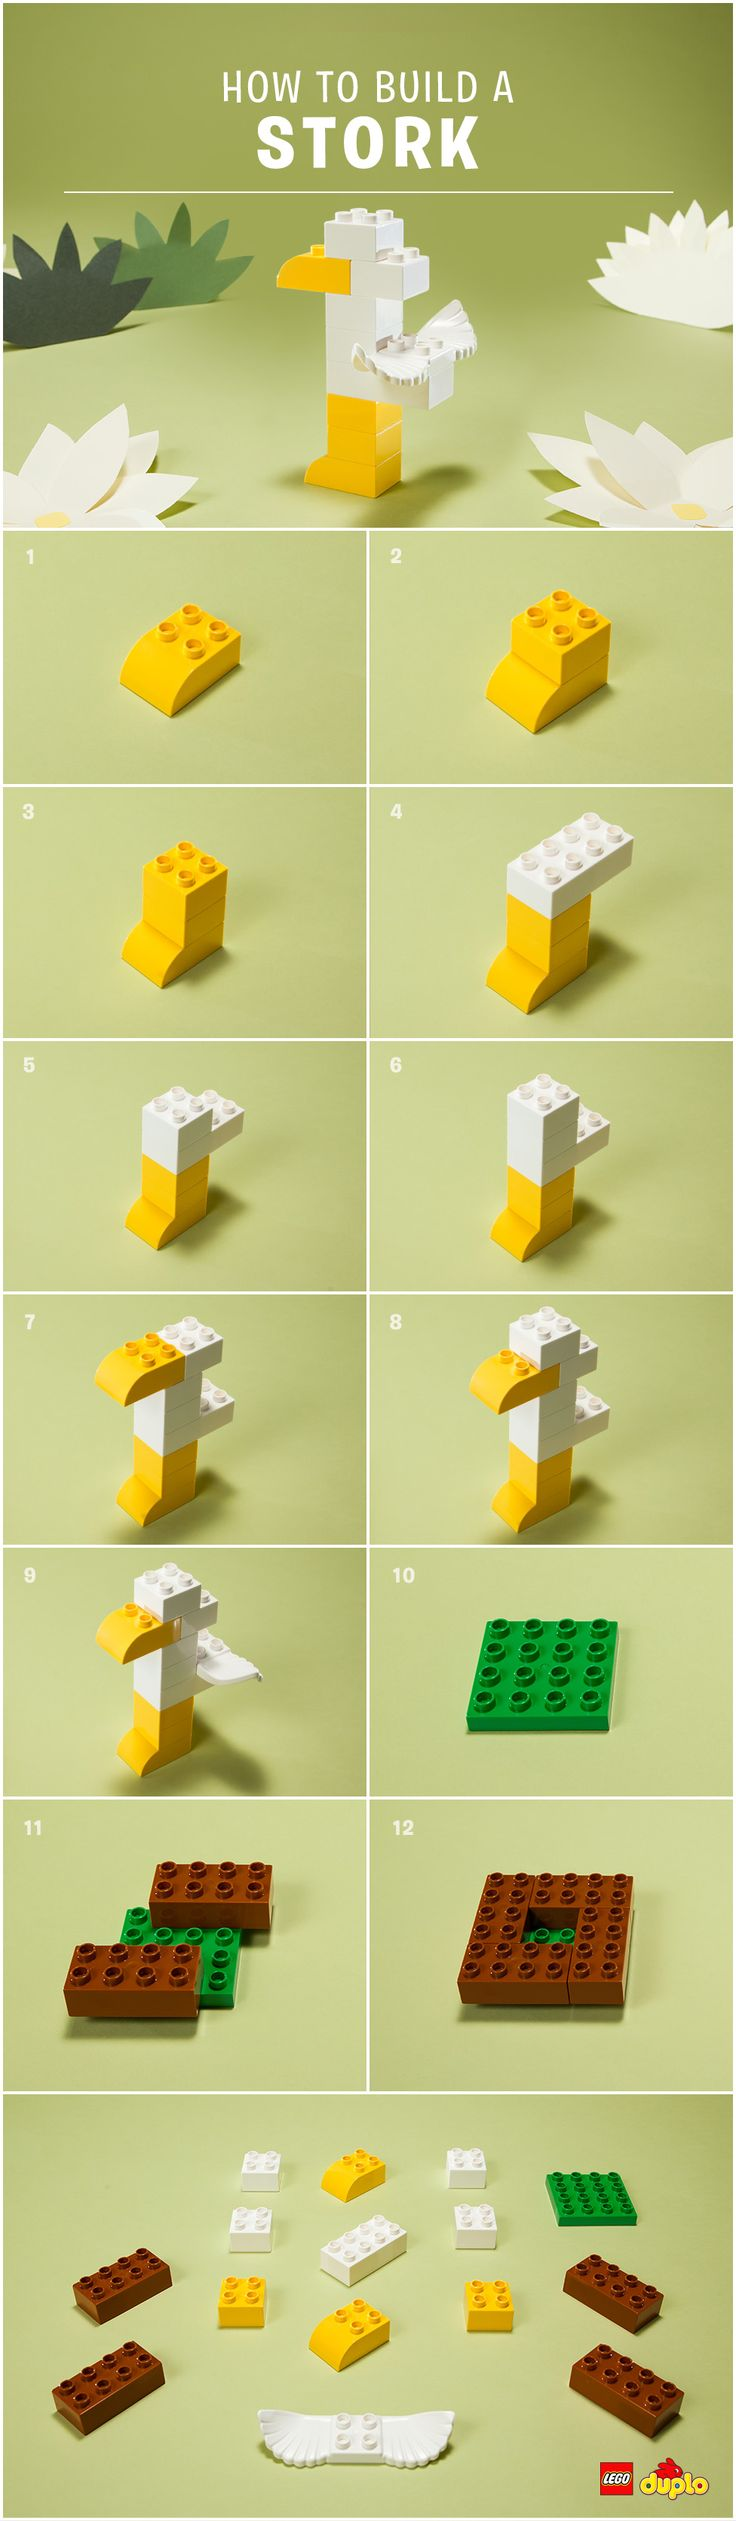 Look out for mr stork and find out how to build your own lego duplo